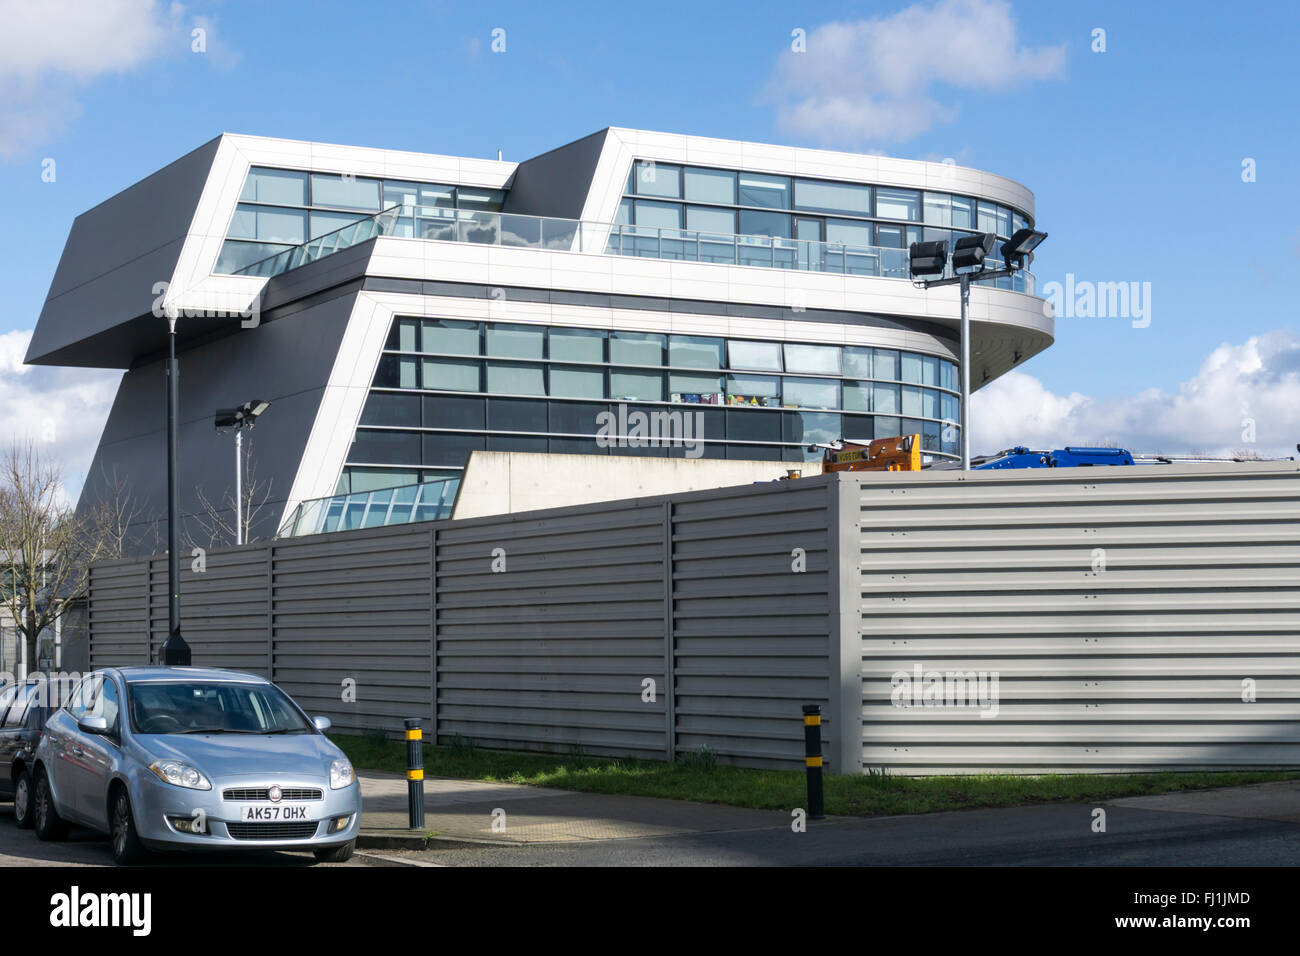 The Evelyn Grace Academy, designed by Zaha Hadid, won the Stirling Prize in 2011. Stock Photo